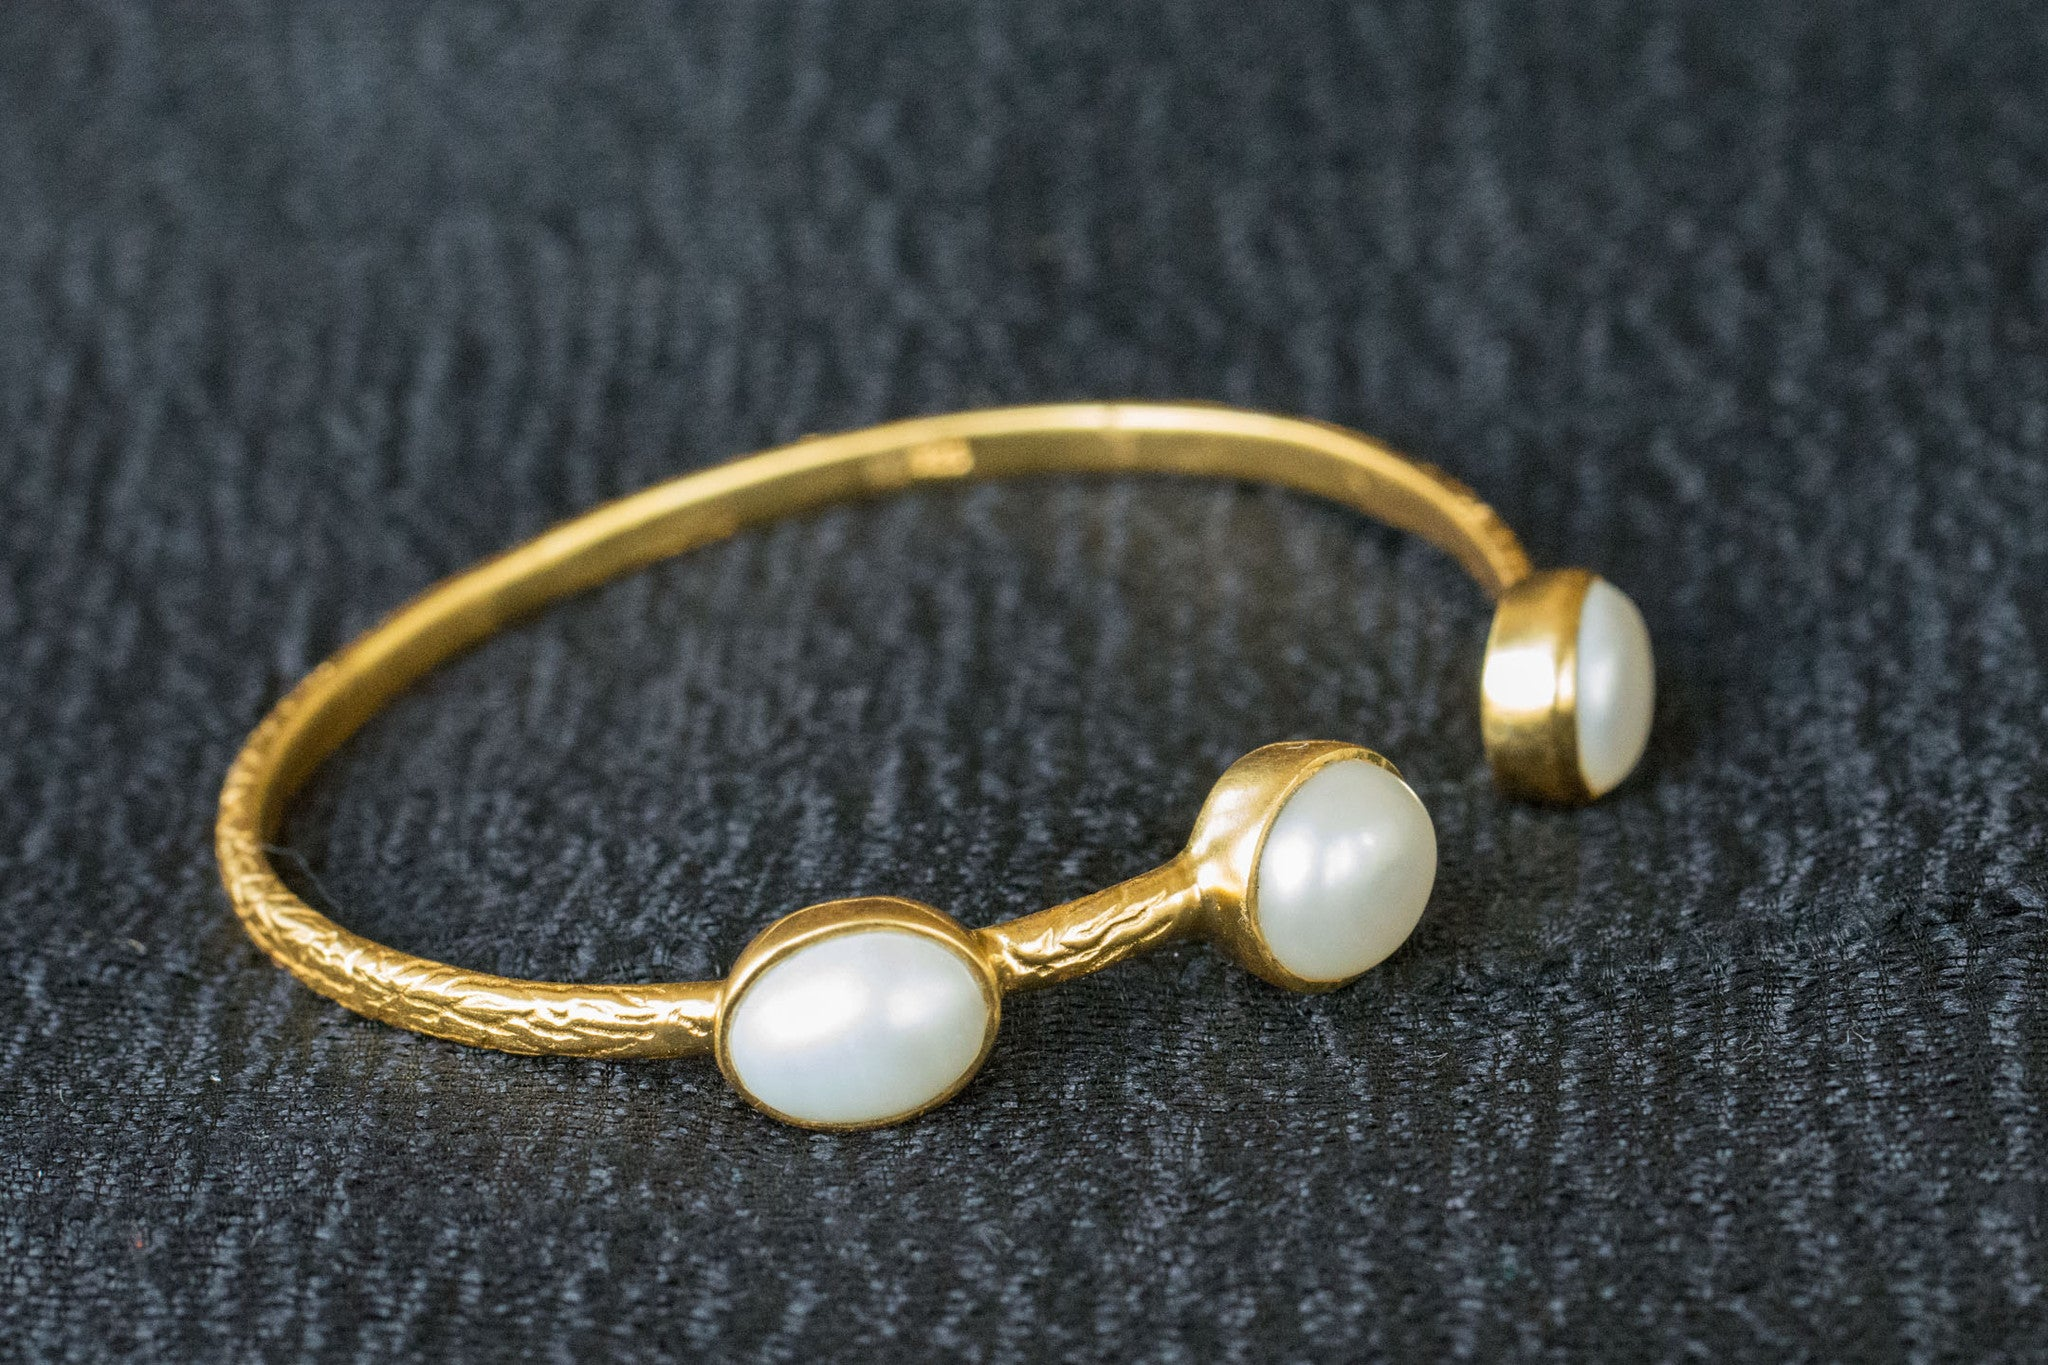 20a538-silver-gold-plated-amrapali-bangle-pearl